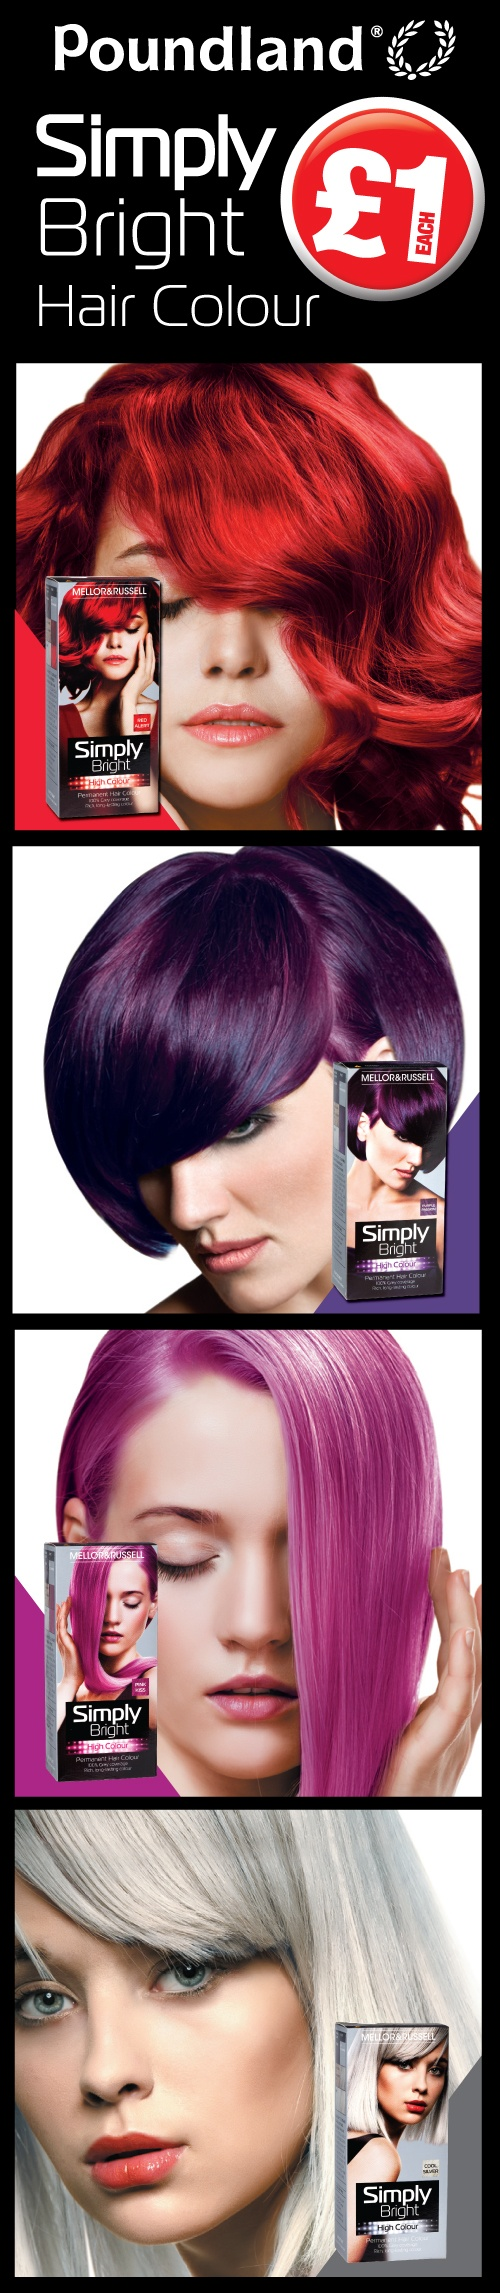 White apron poundland - Simply Bright Hair Colour Exclusive To Poundland Which One Will You Choose Let Us